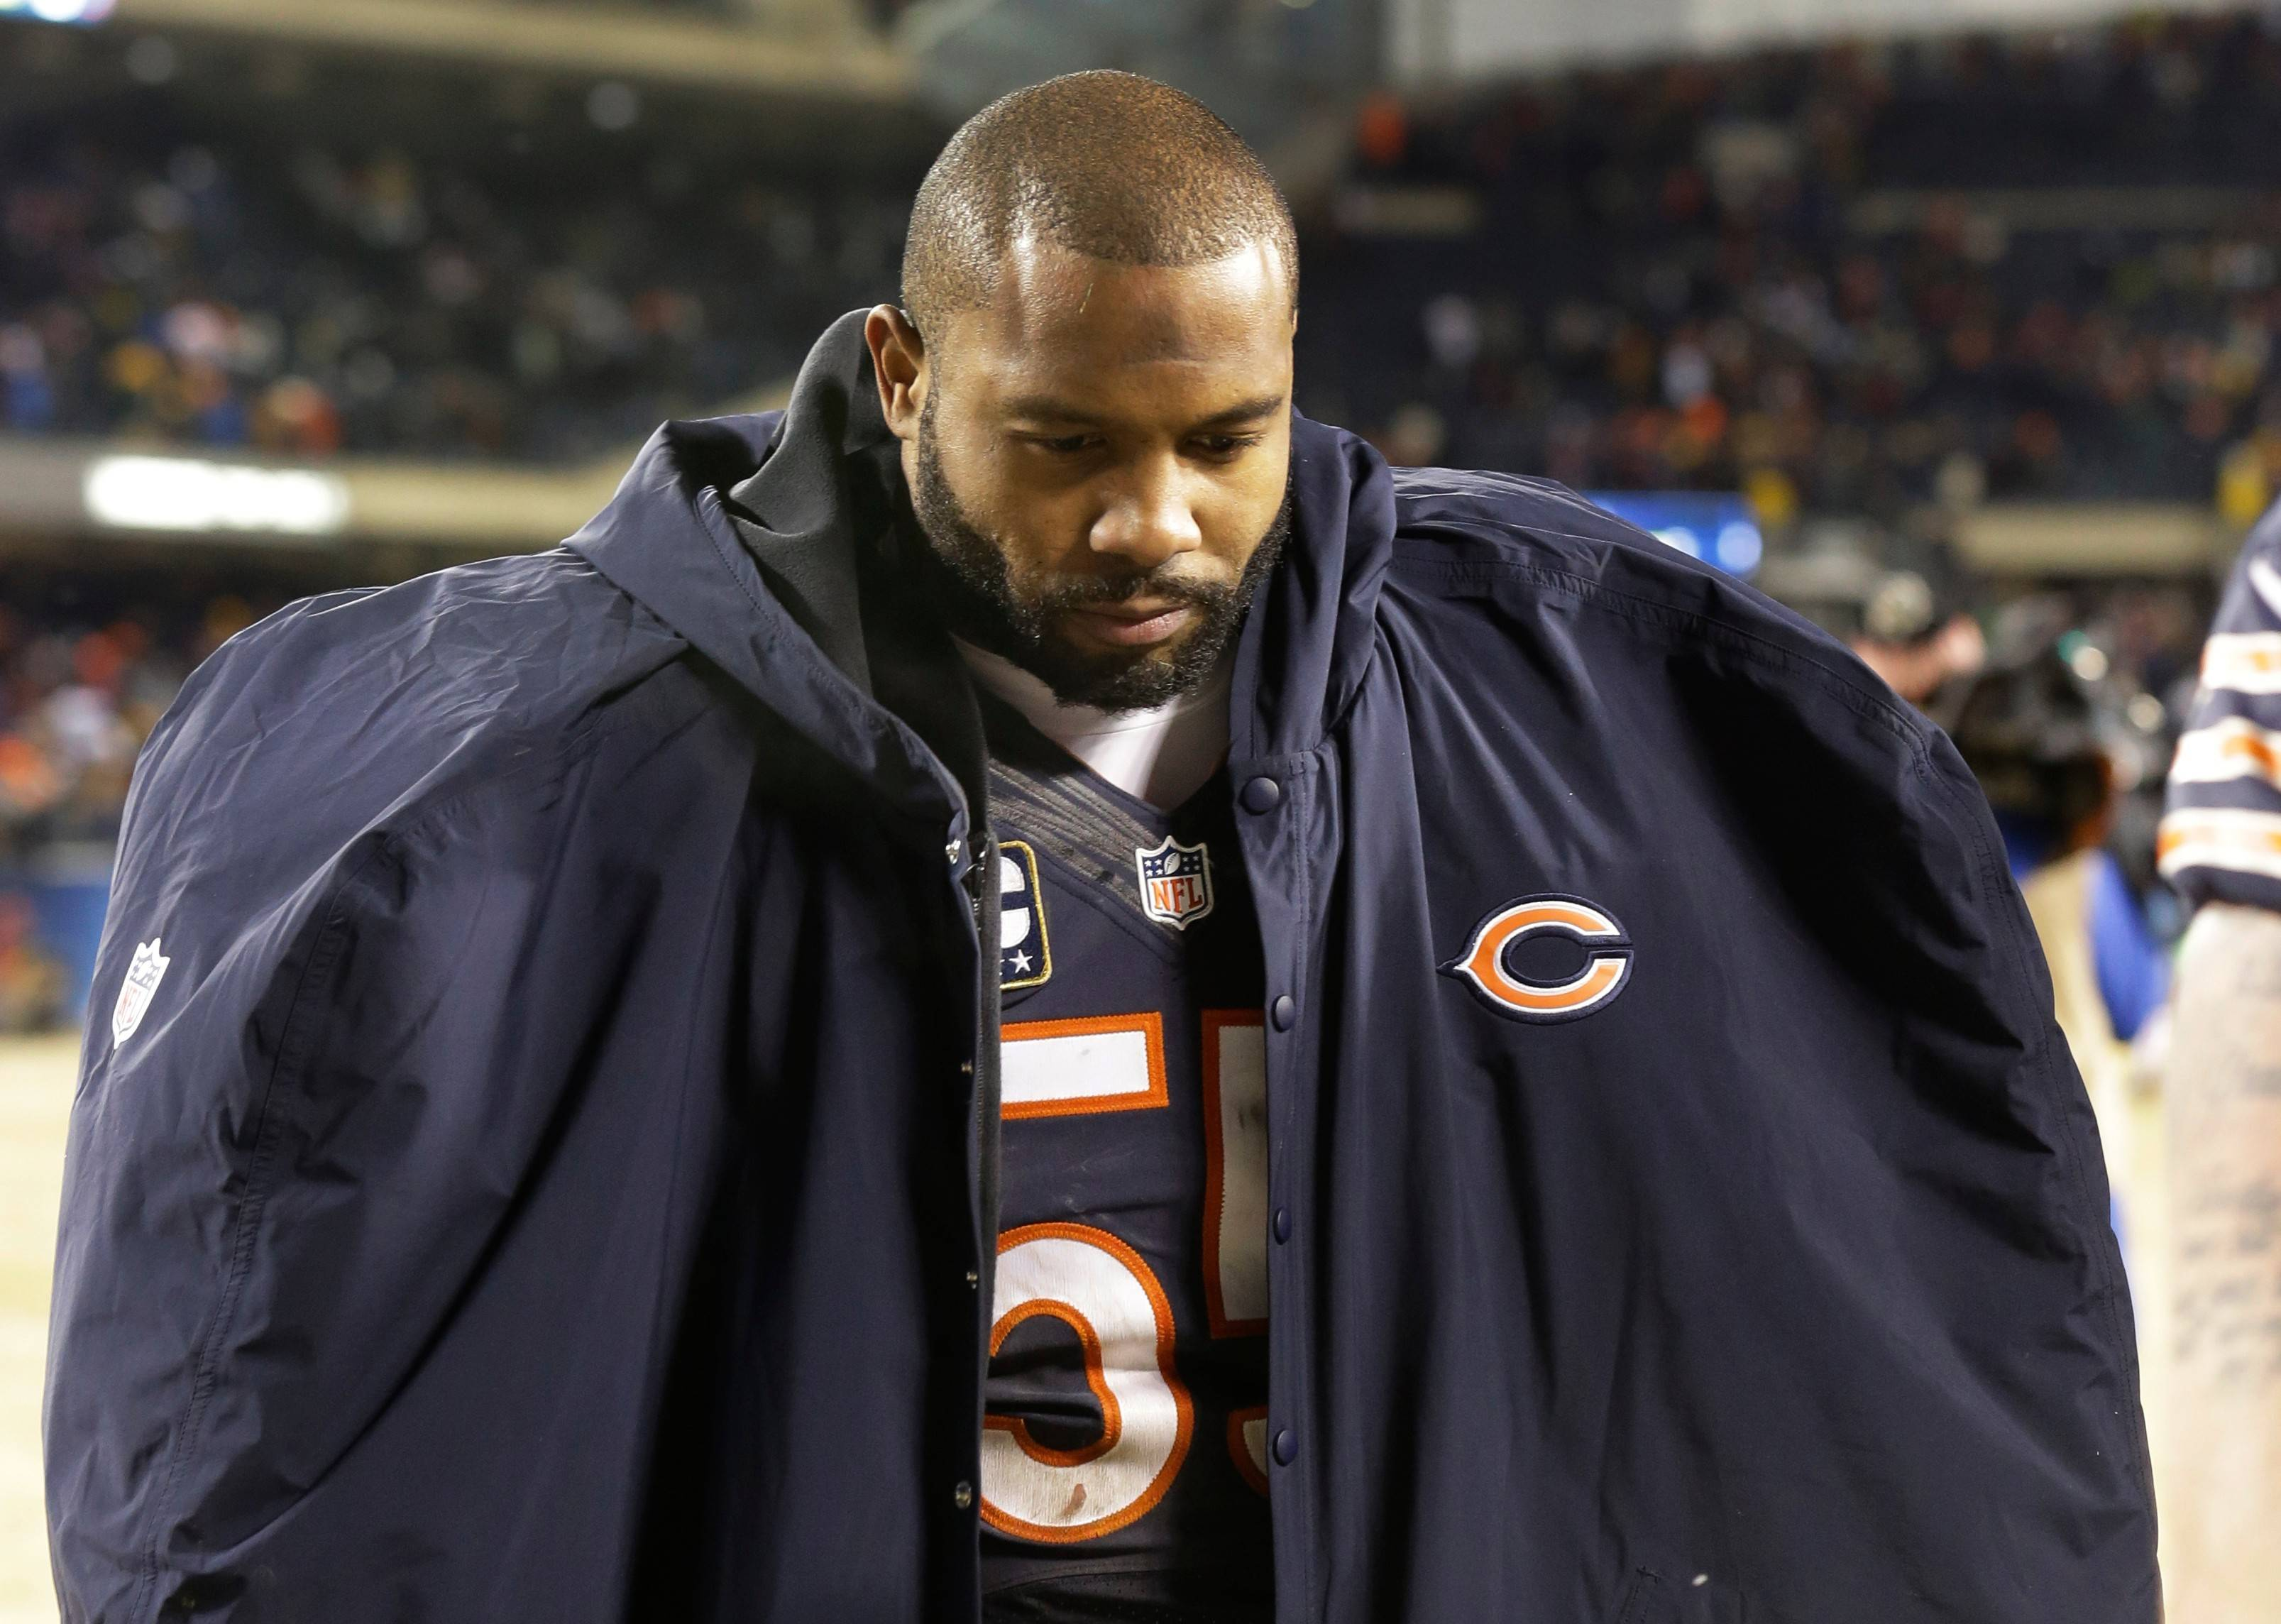 Imrem: Bears, Briggs serve up some controversy